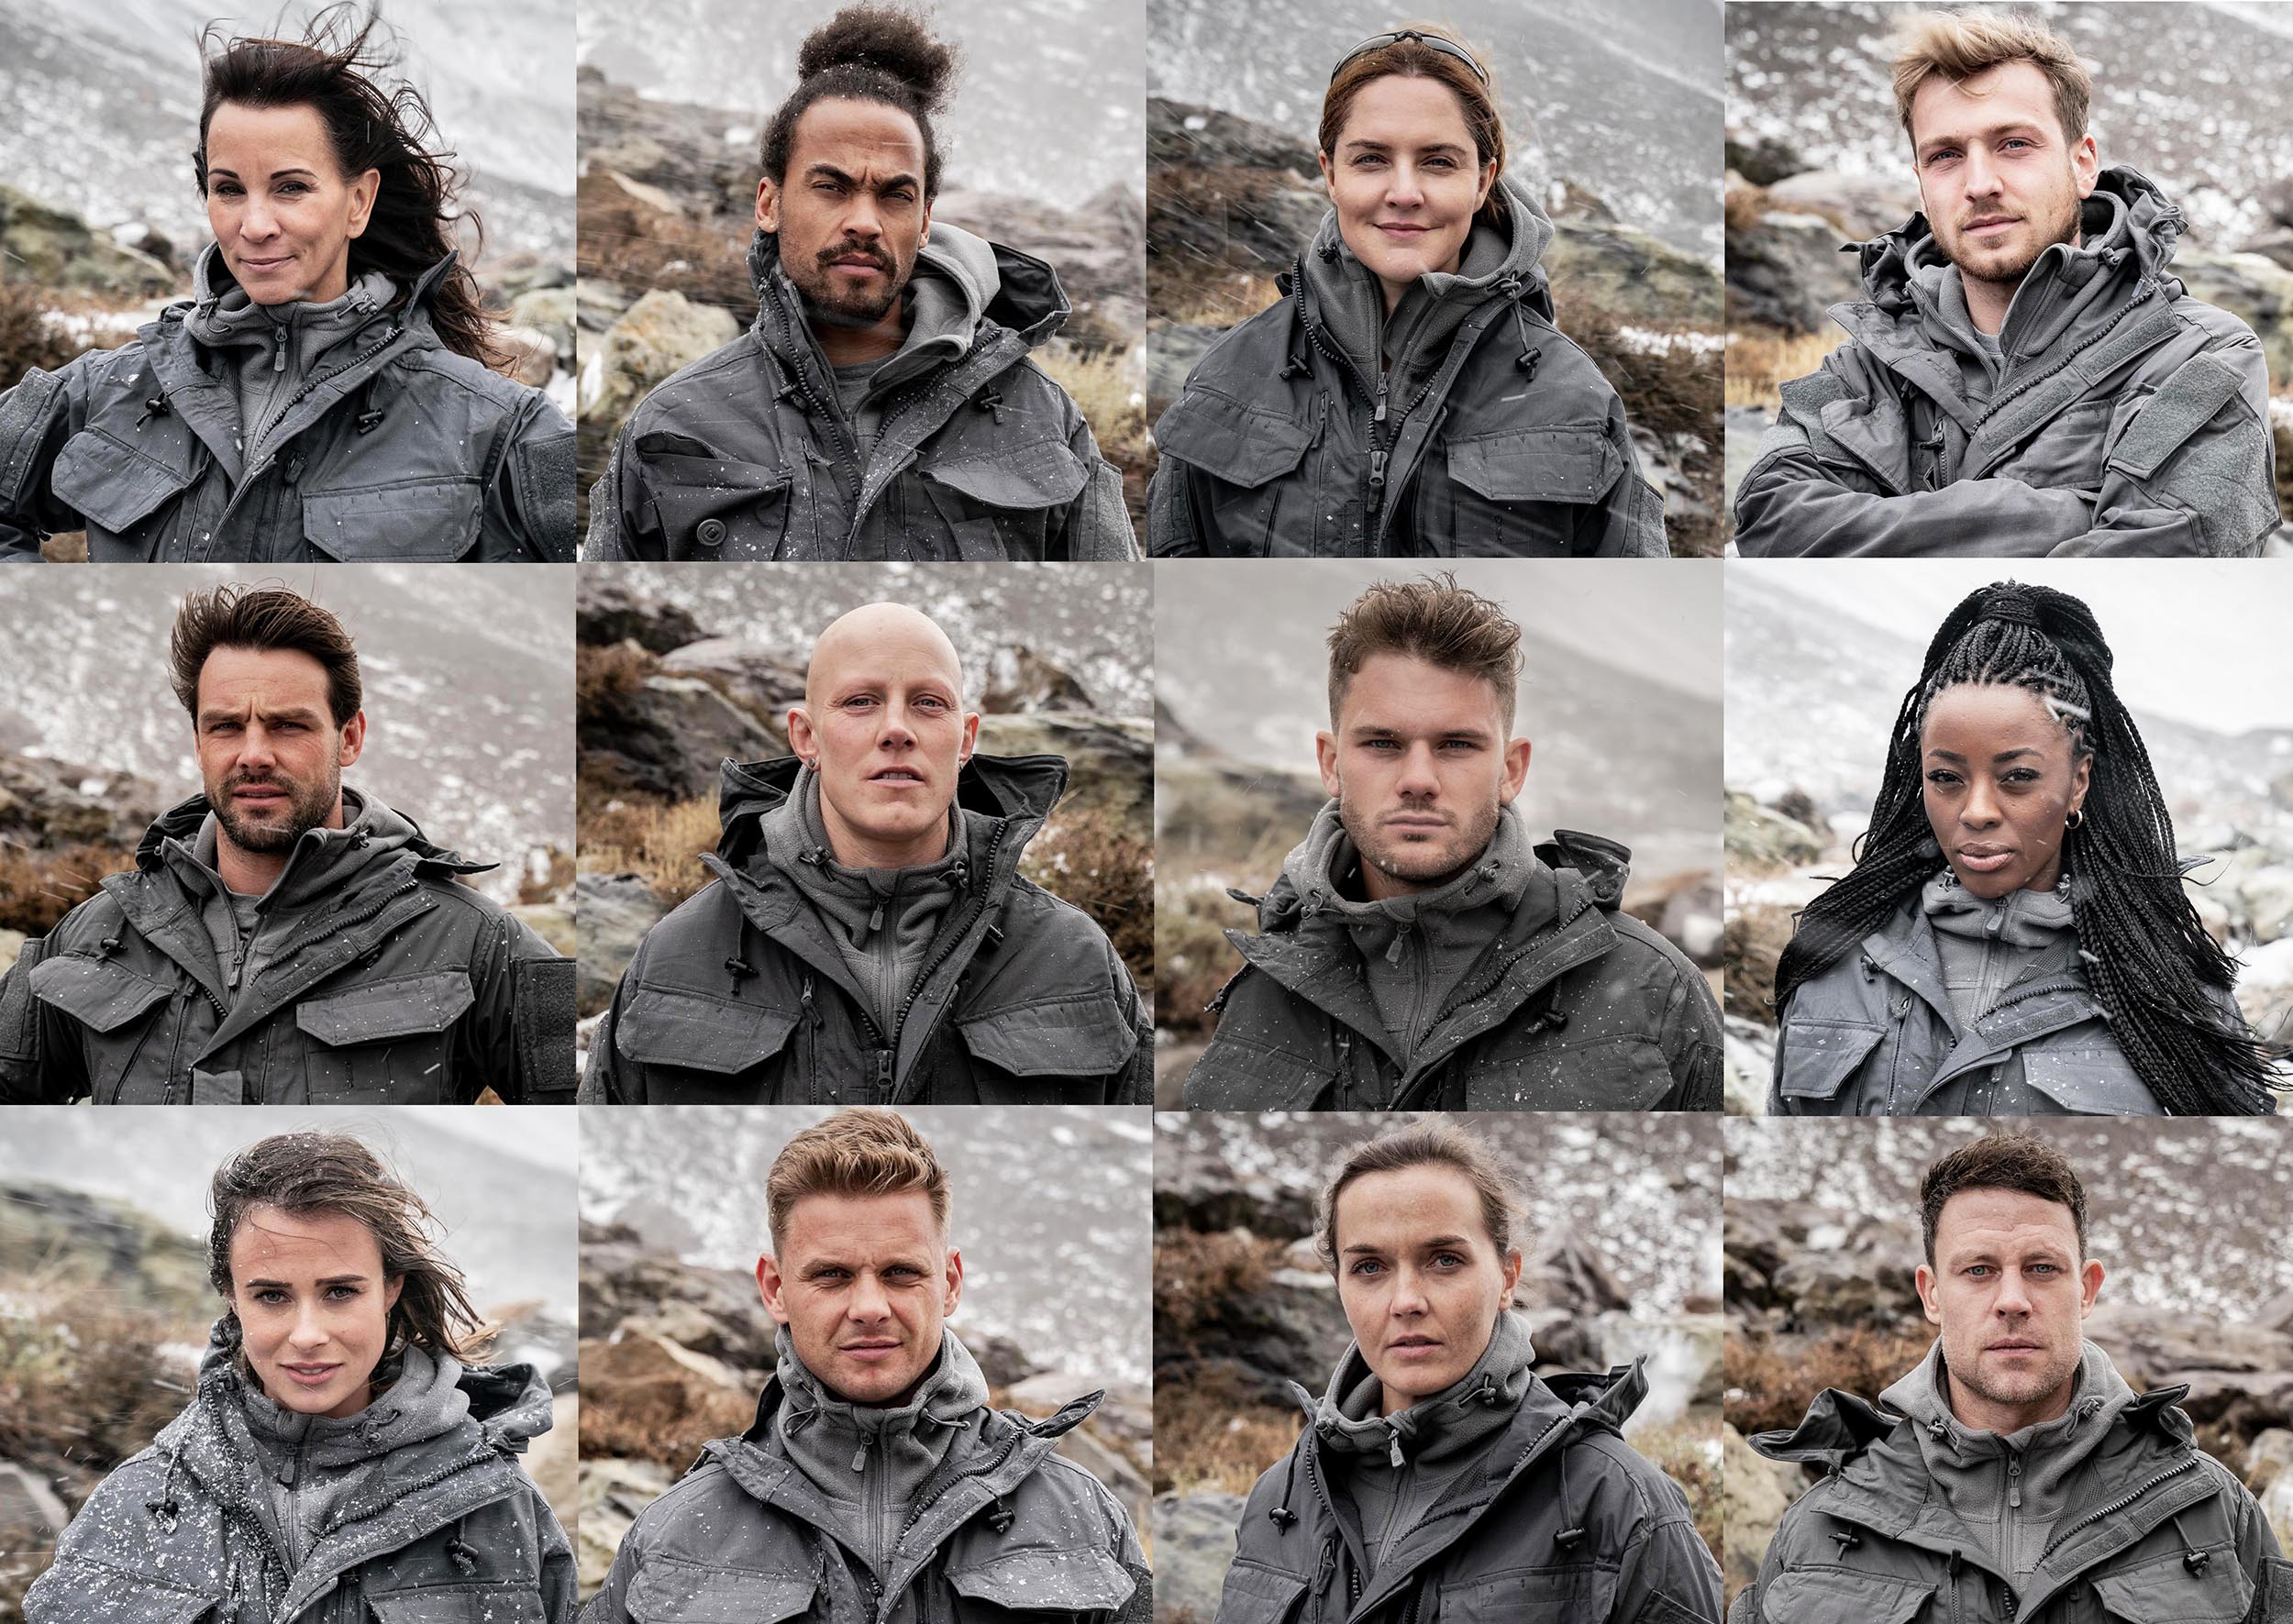 Celebrity SAS cast including Andrea McClean, Dev Griffin, Louise Mensch, Sam Thompson, Ben Foden, Heather Fisher, Jeremy Irvine, AJ Odudu, Camilla Thurlow, Jeff Brazier, Victoria Pendleton and Wayne Bridge